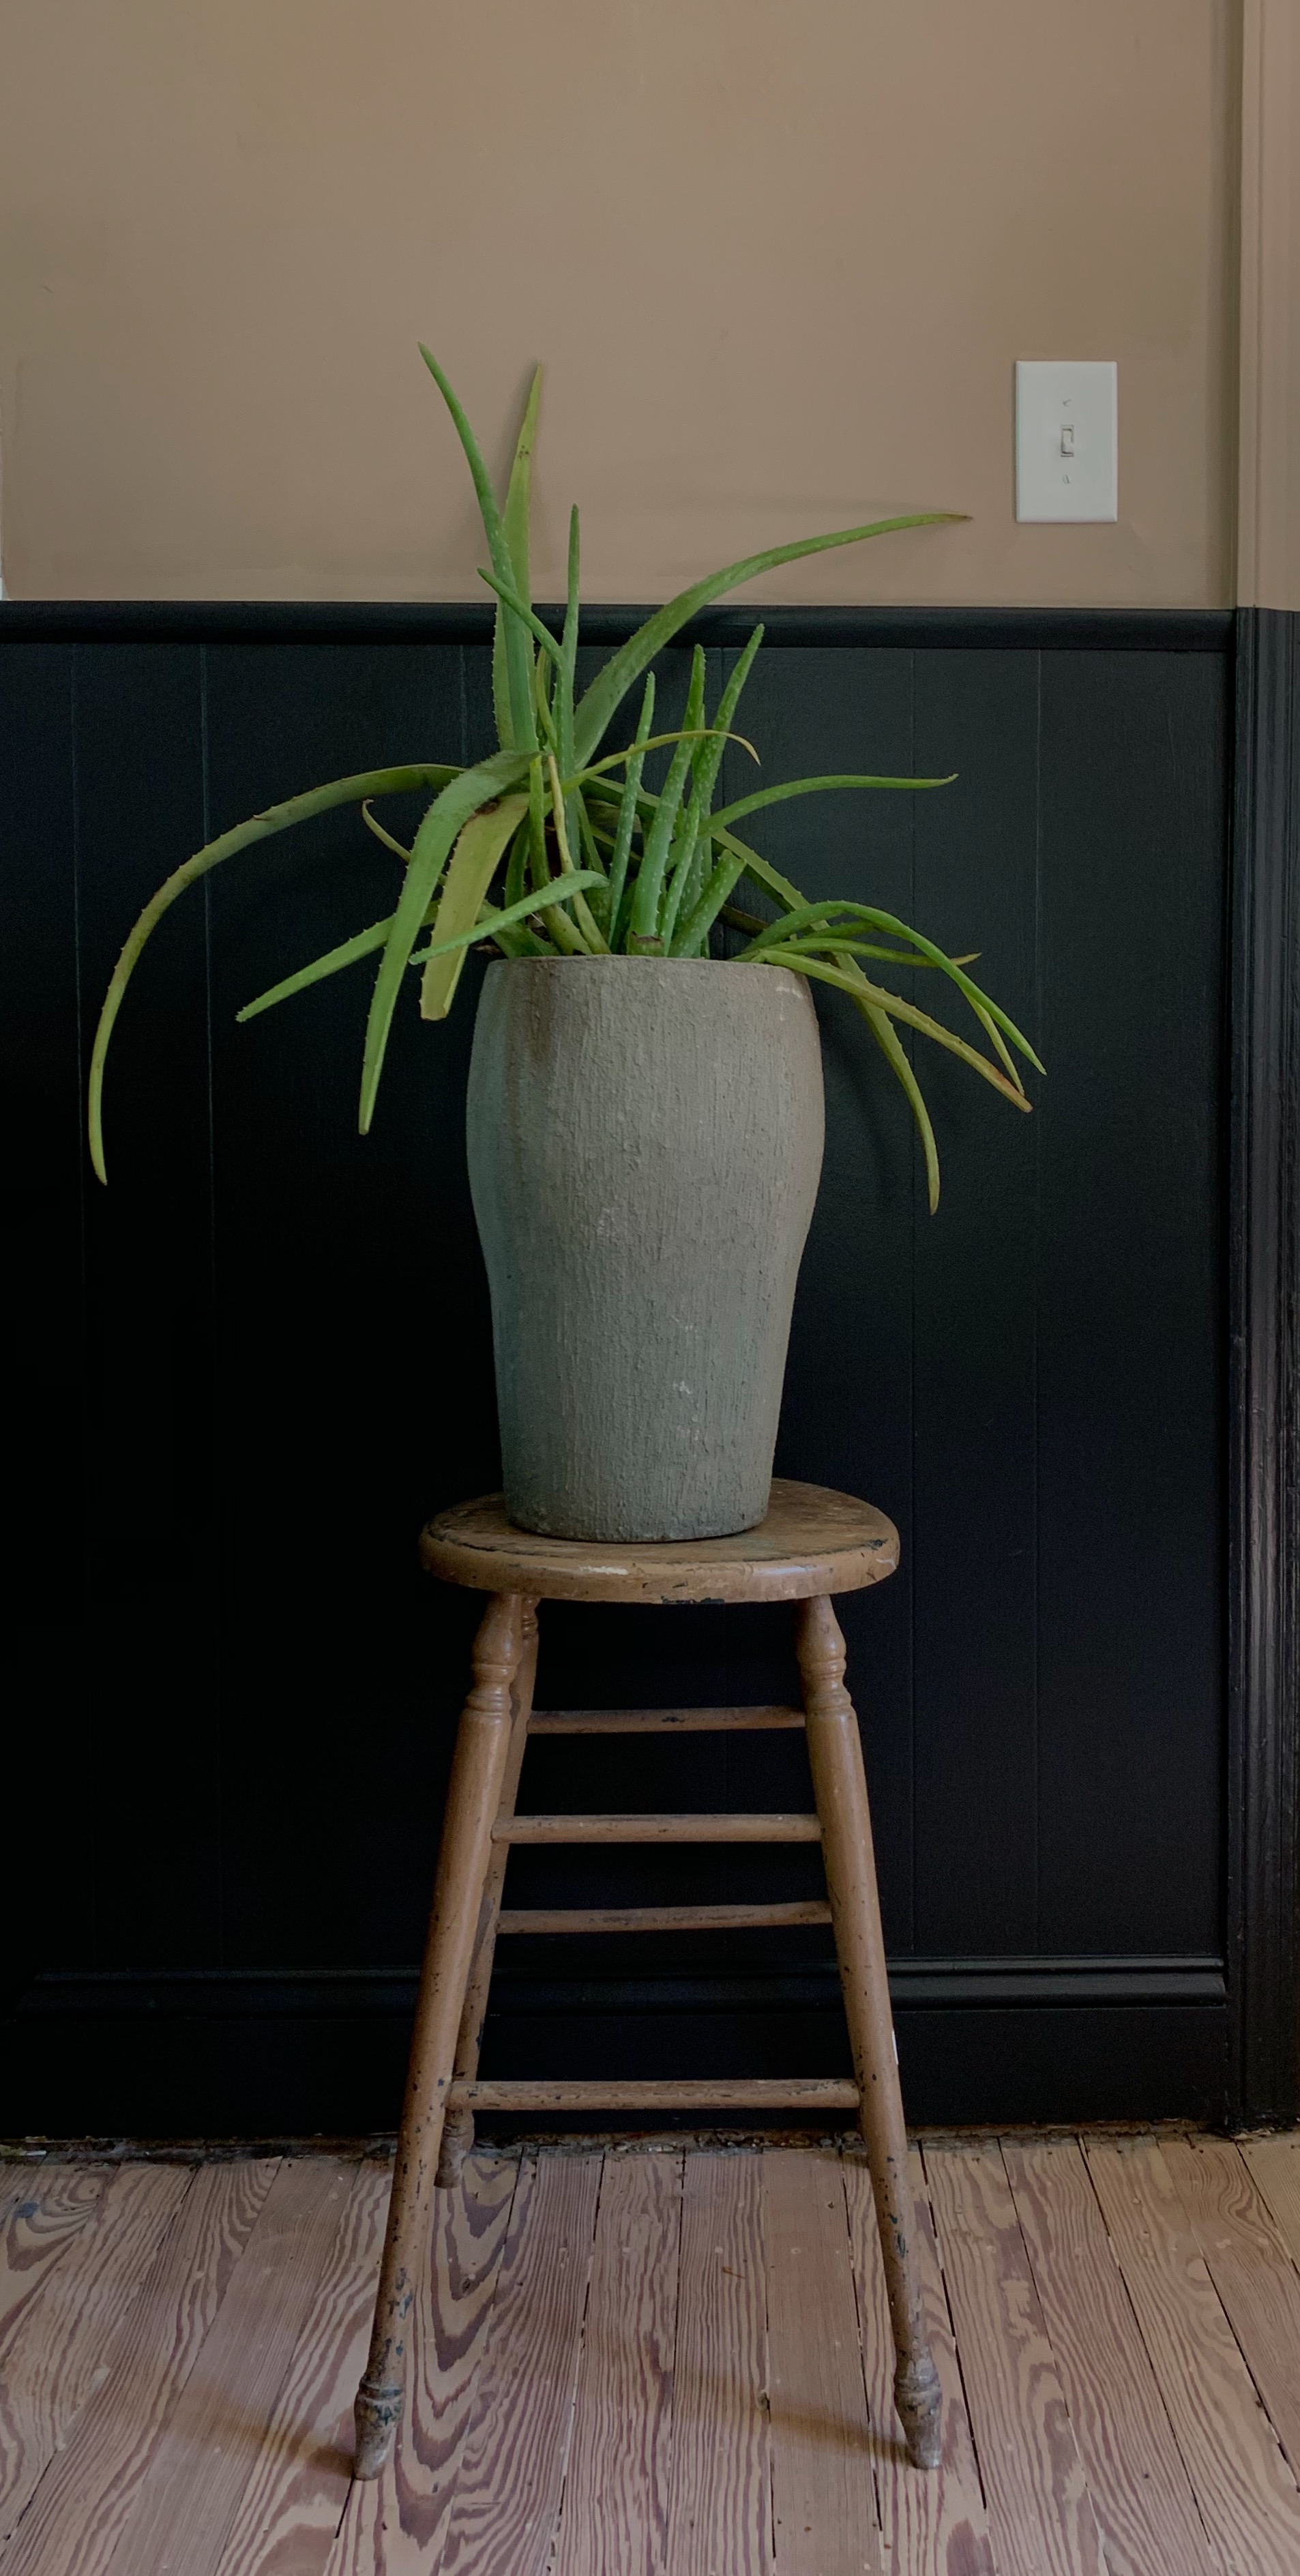 Aloe is a great addition to any room. The striking form and color provides contrast against a dark wall.